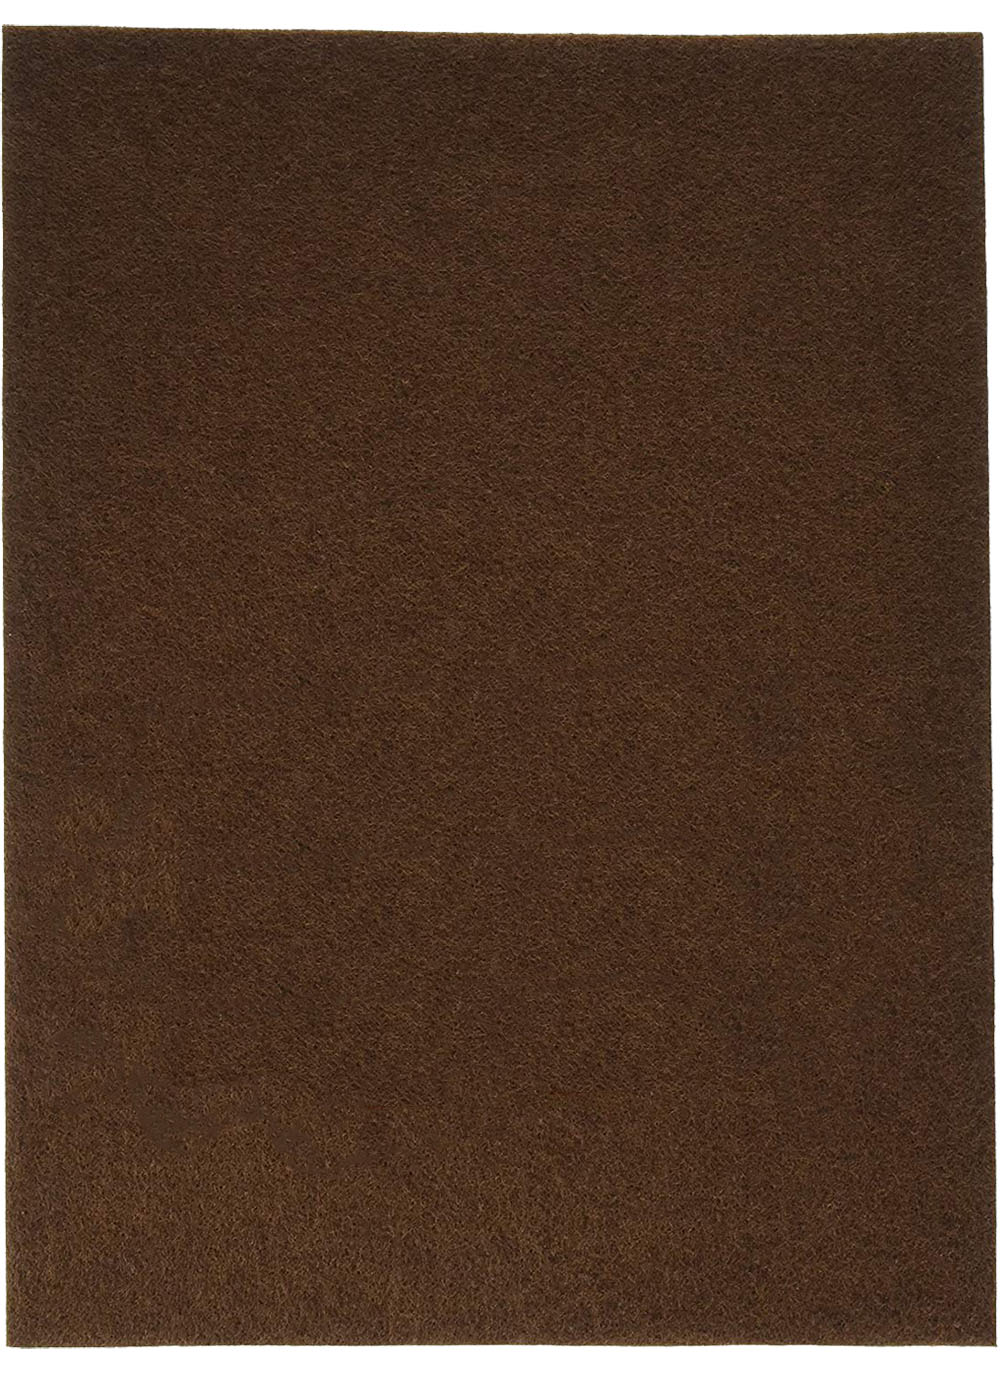 "Stiff Felt 9"" x 12"" x 1.5mm - Brown"